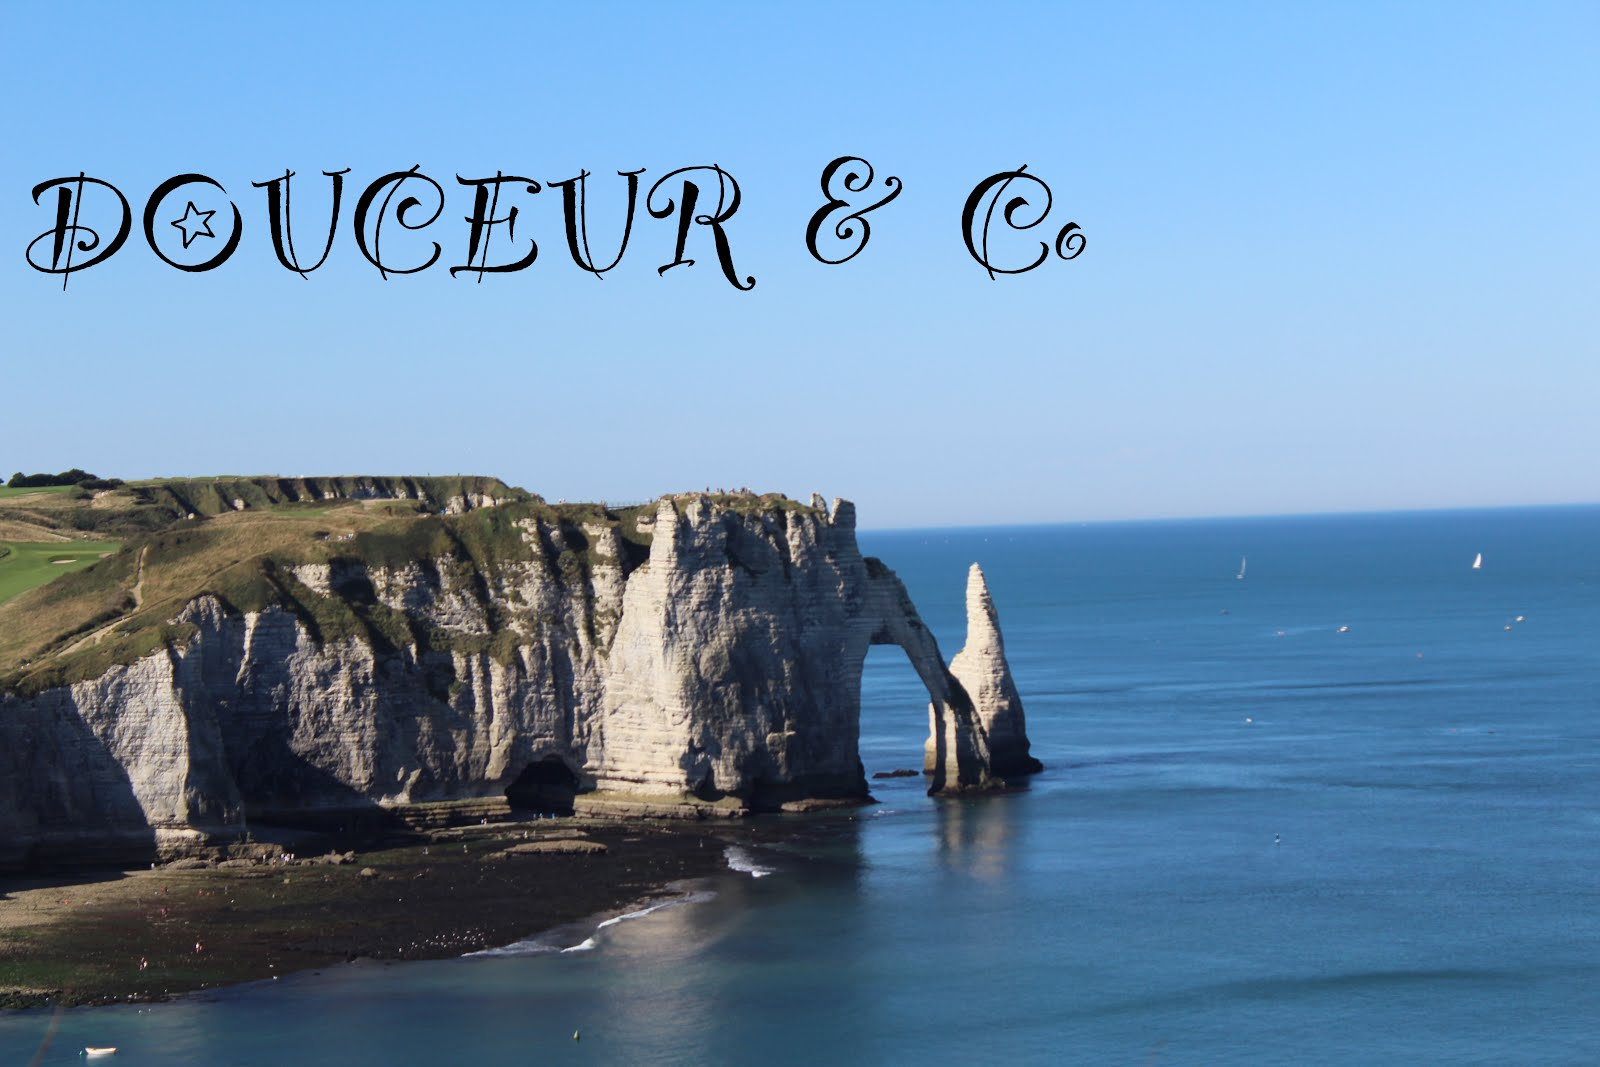 DOUCEUR & Co